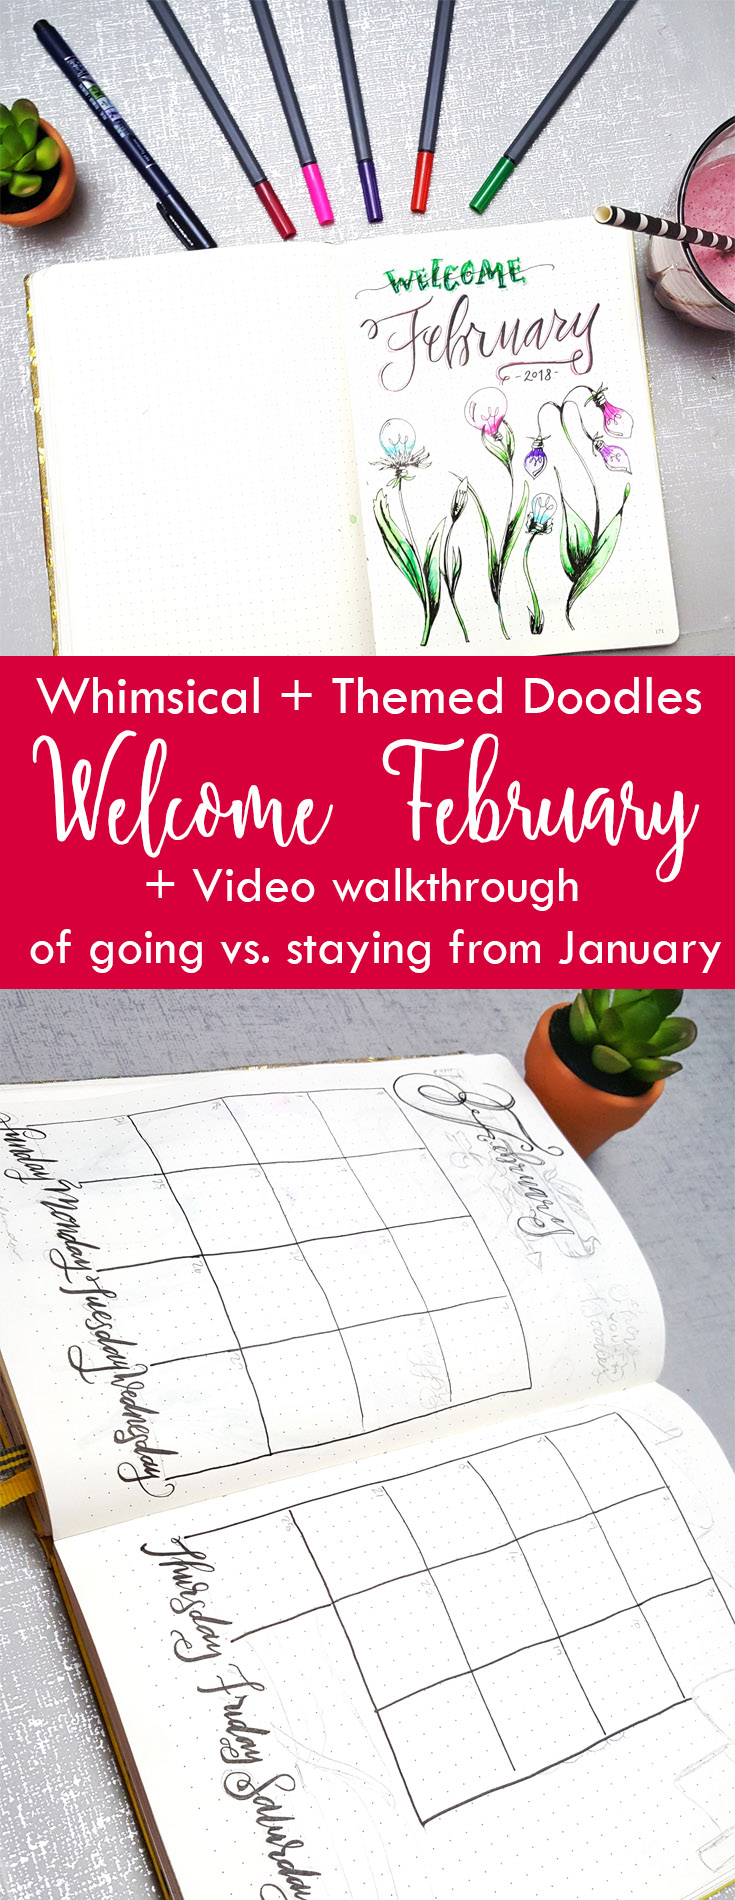 February Doodles + what's staying vs. what's going from January's plans + video walk through